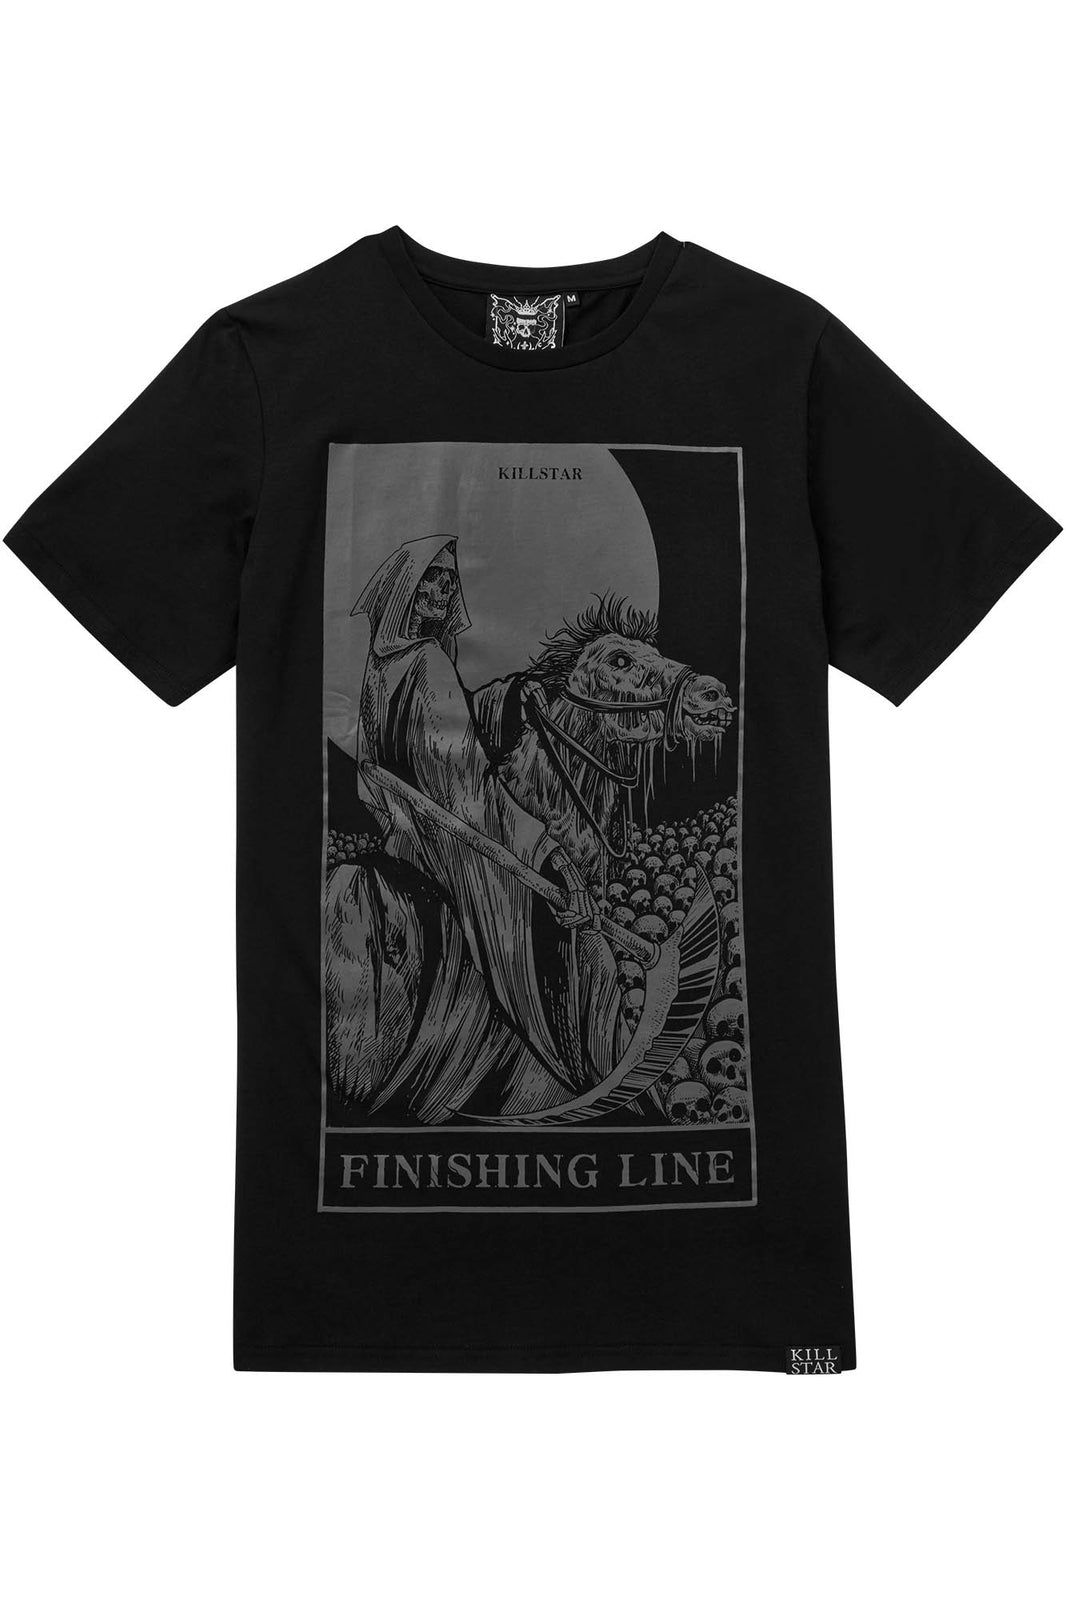 Finishing Line T-Shirt